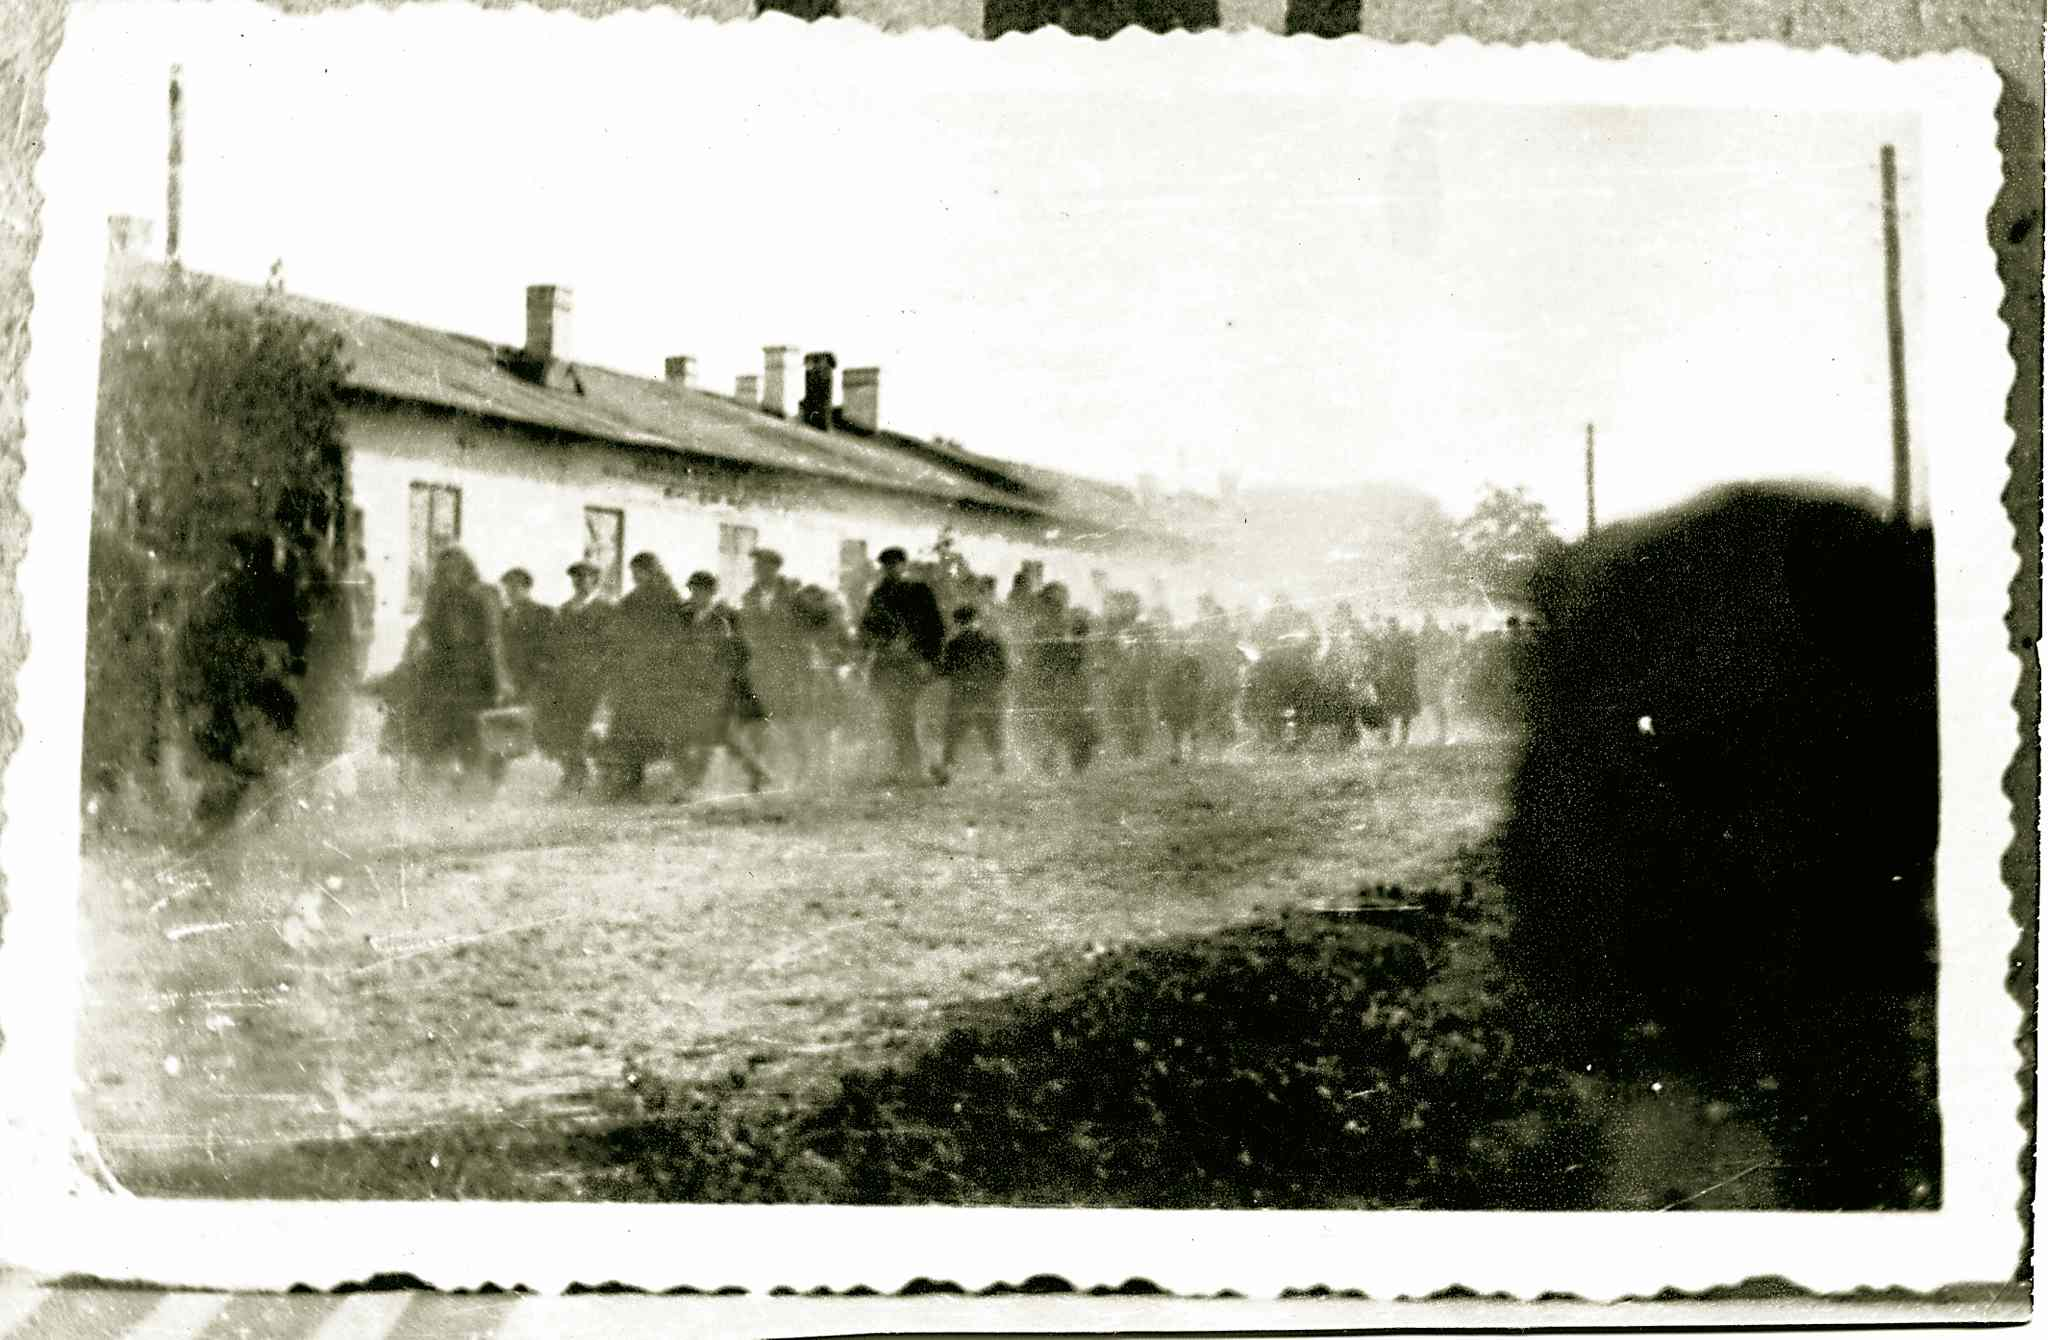 Jews of Pinczow, Poland, were rounded up and marched to the transports in Jedrzejow to be taken to the Treblinka death camp.